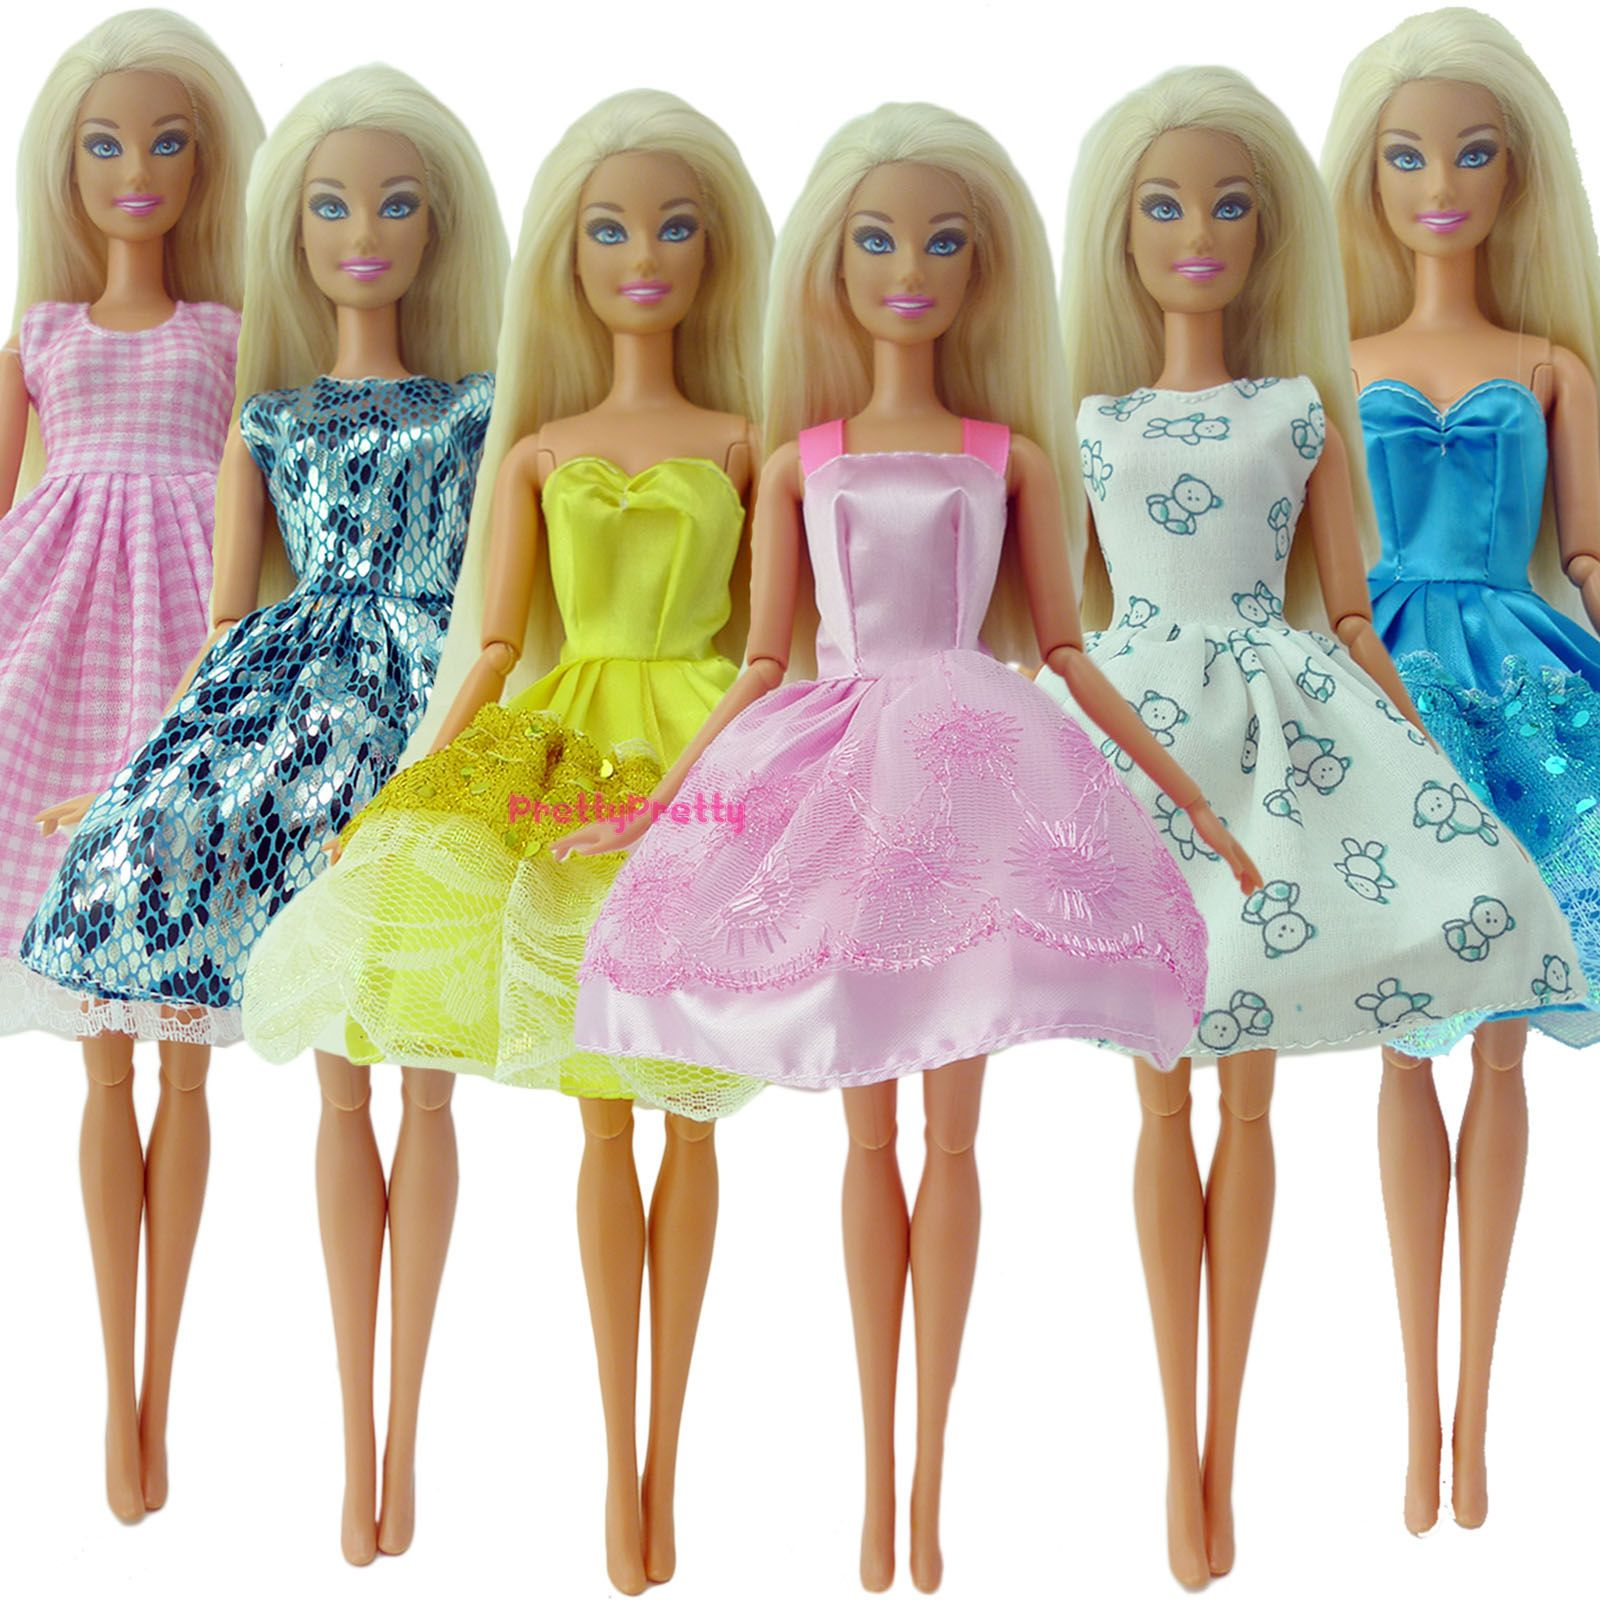 Doll Tank Clothes For 12 in Skirt 5 Outfits Fashion Cute Dress Daily  Pants